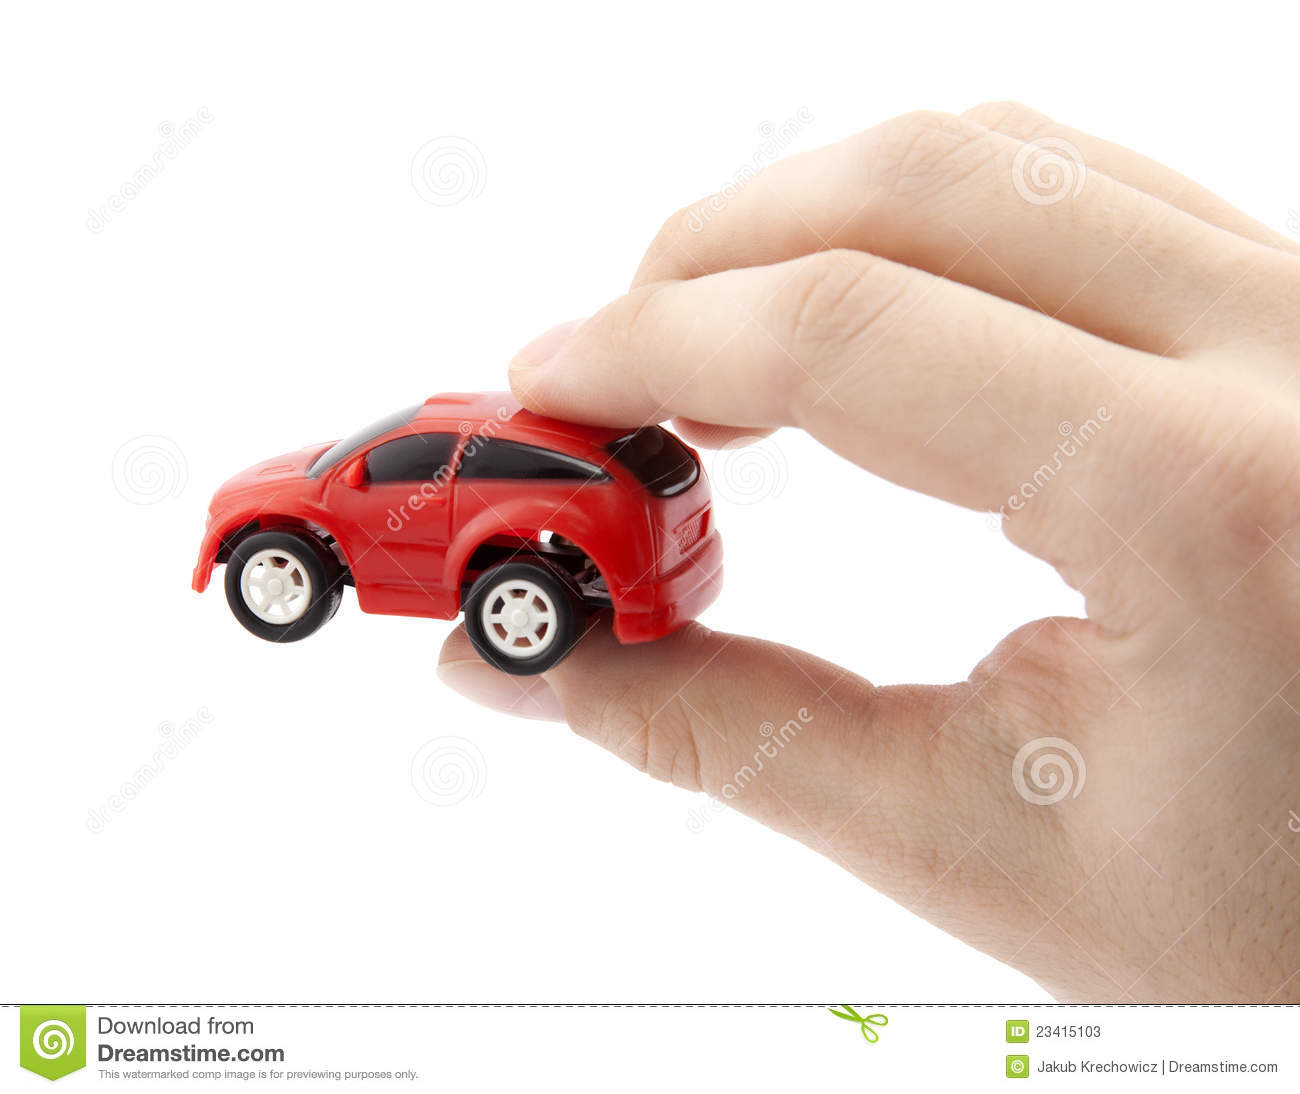 Hand Holding A Small Red Car Stock Photos  Image: 23415103